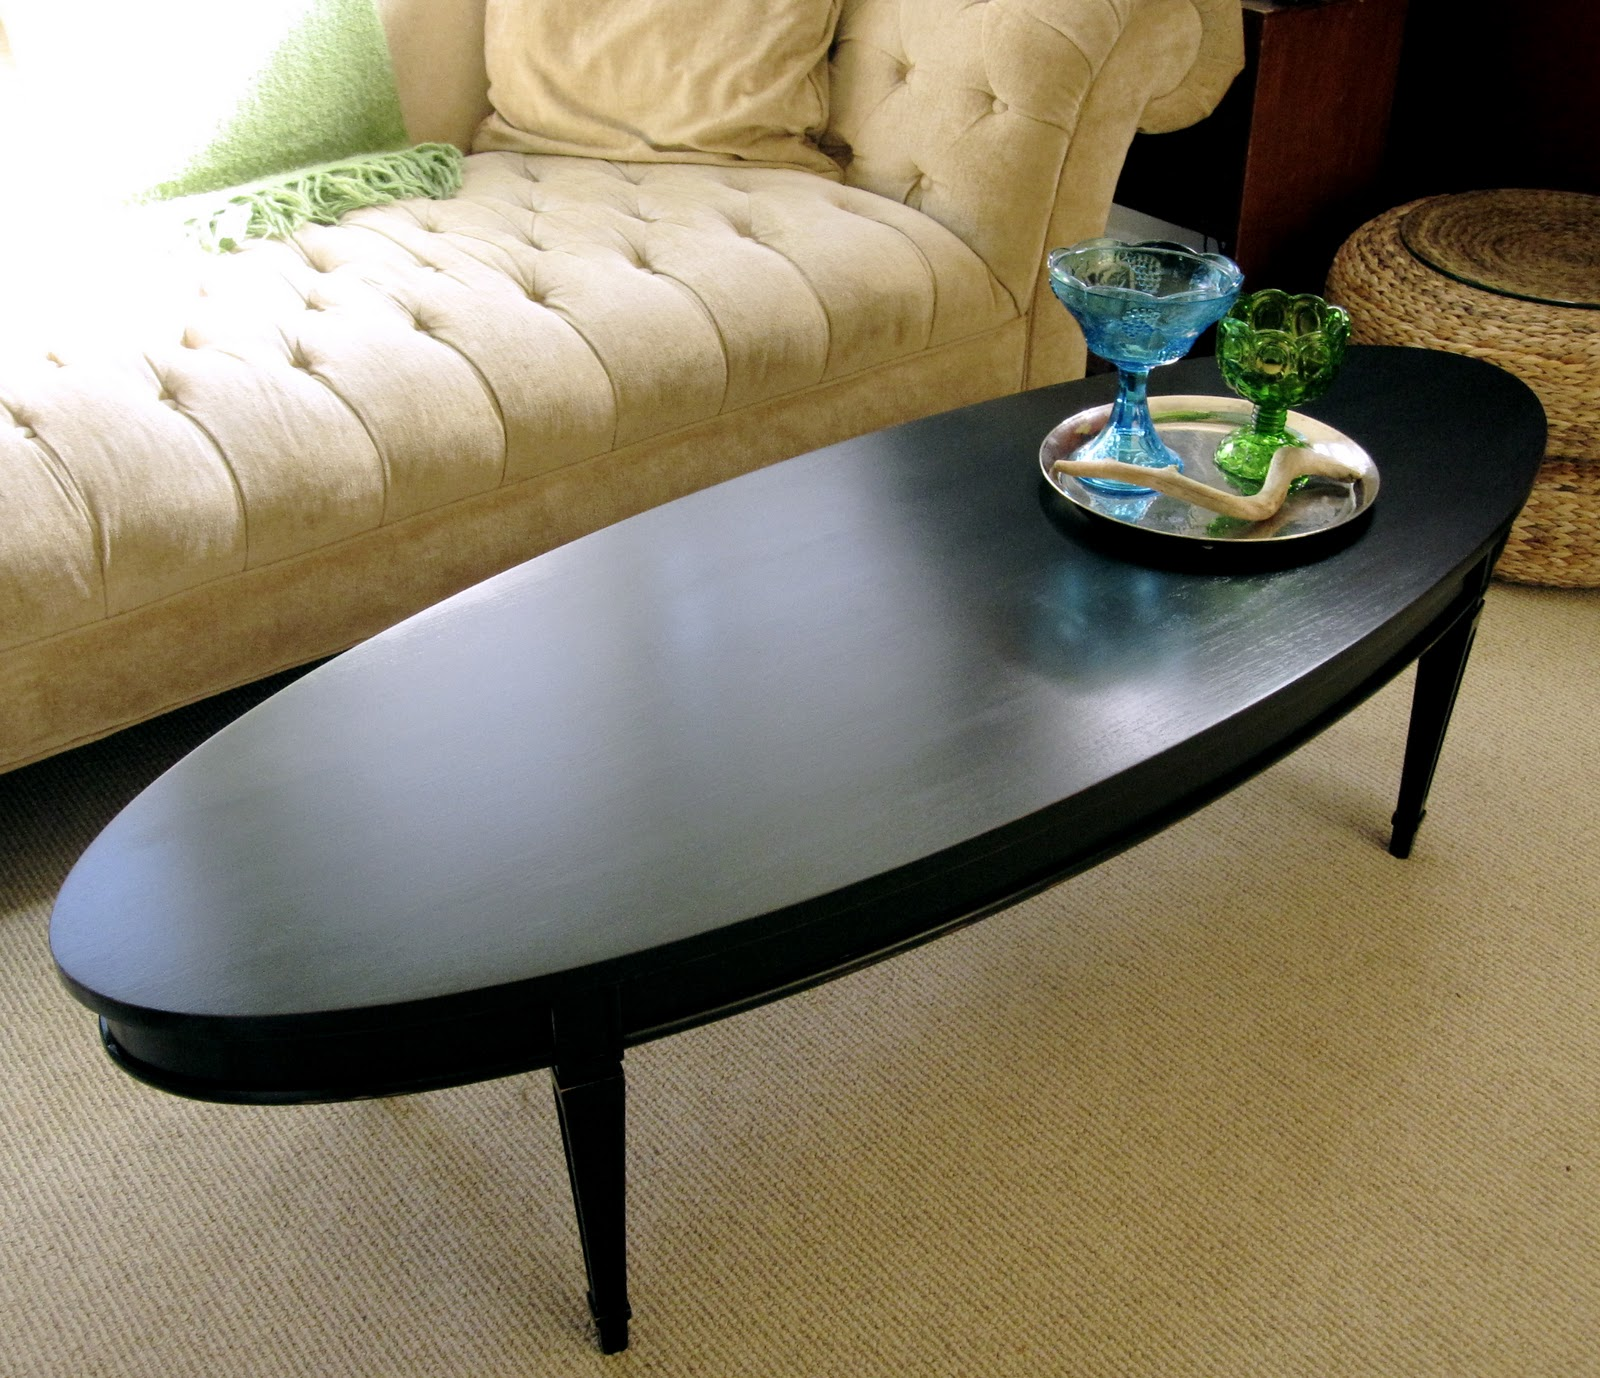 Wood Oval Coffee Table Made In China: Living Room Design: Amazing Oval Coffee Table For Home